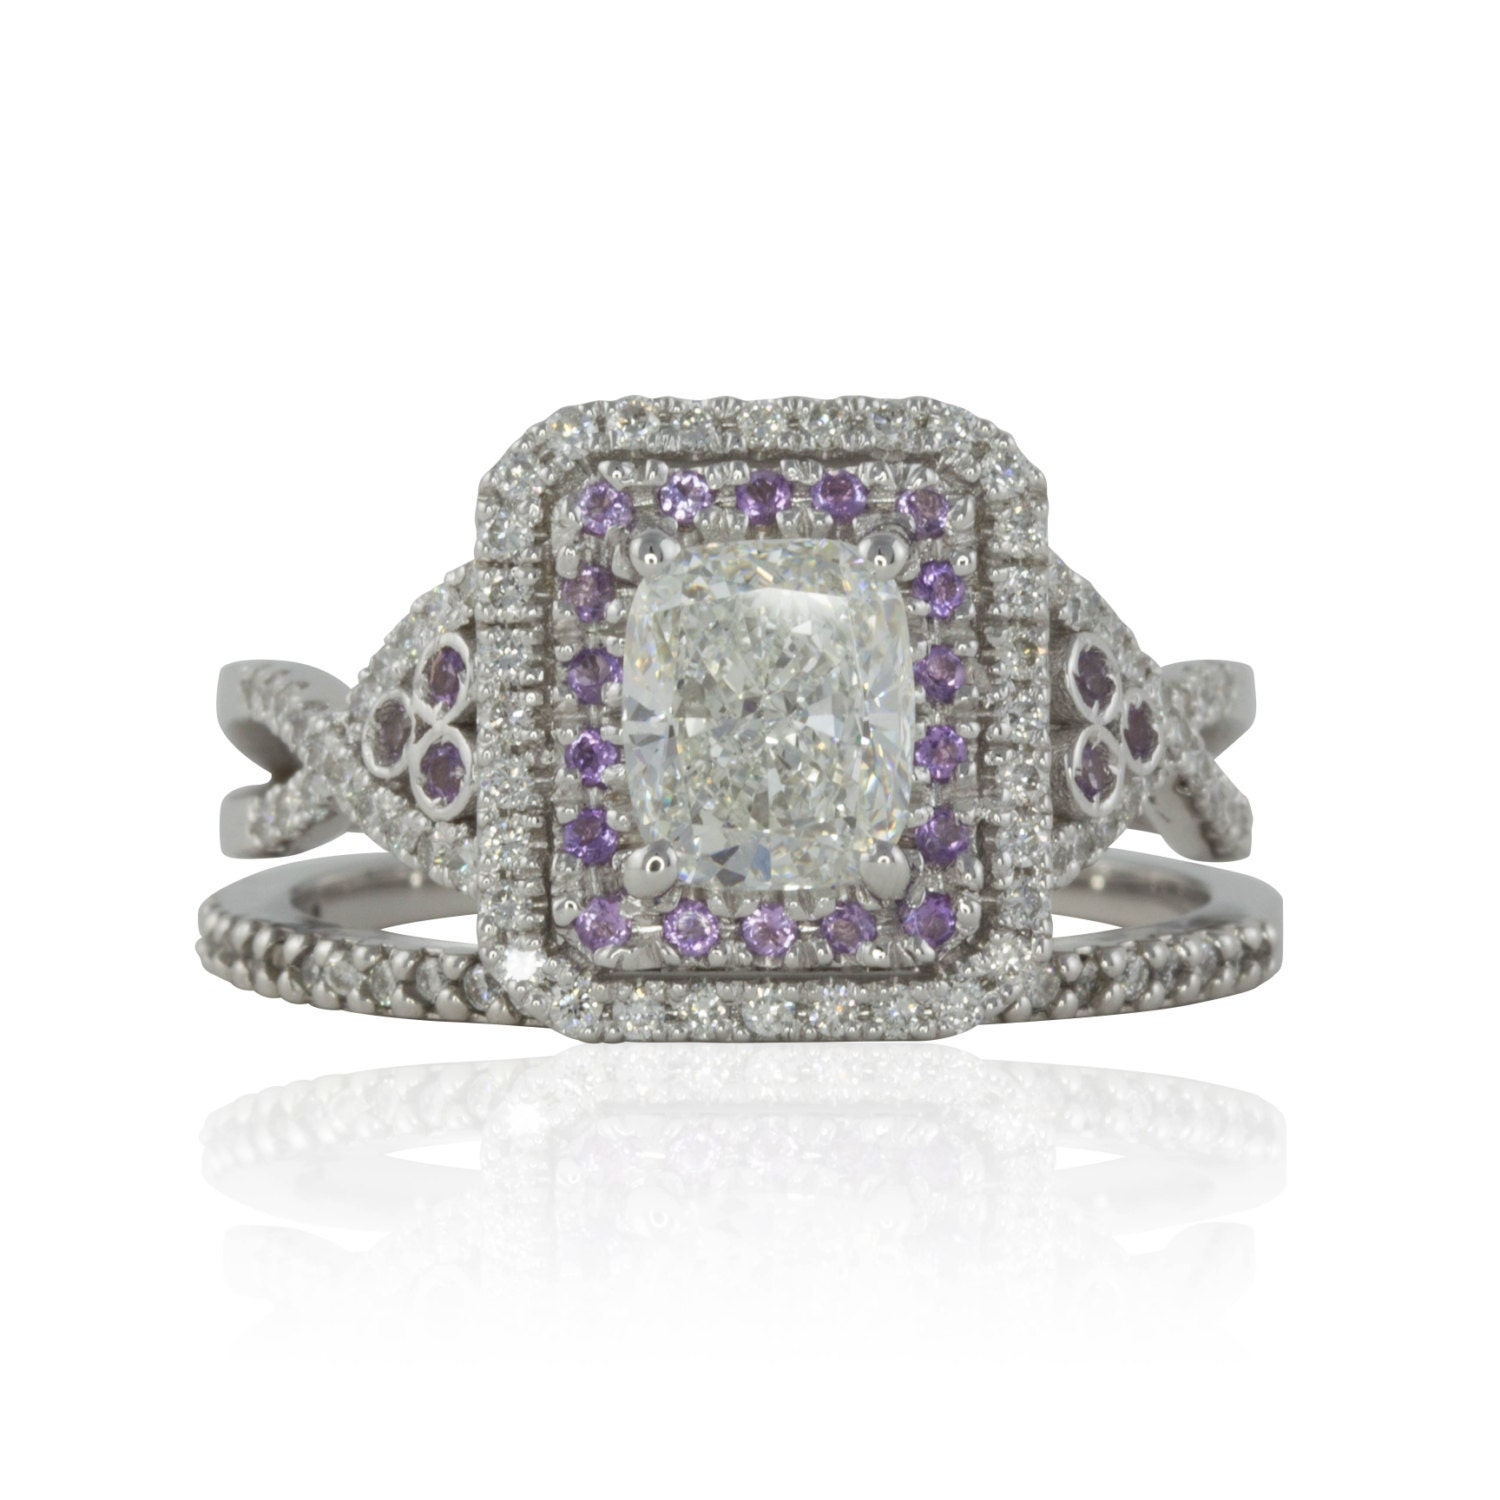 Cushion Cut Engagement Ring 1 25 carat Rectangle Diamond with